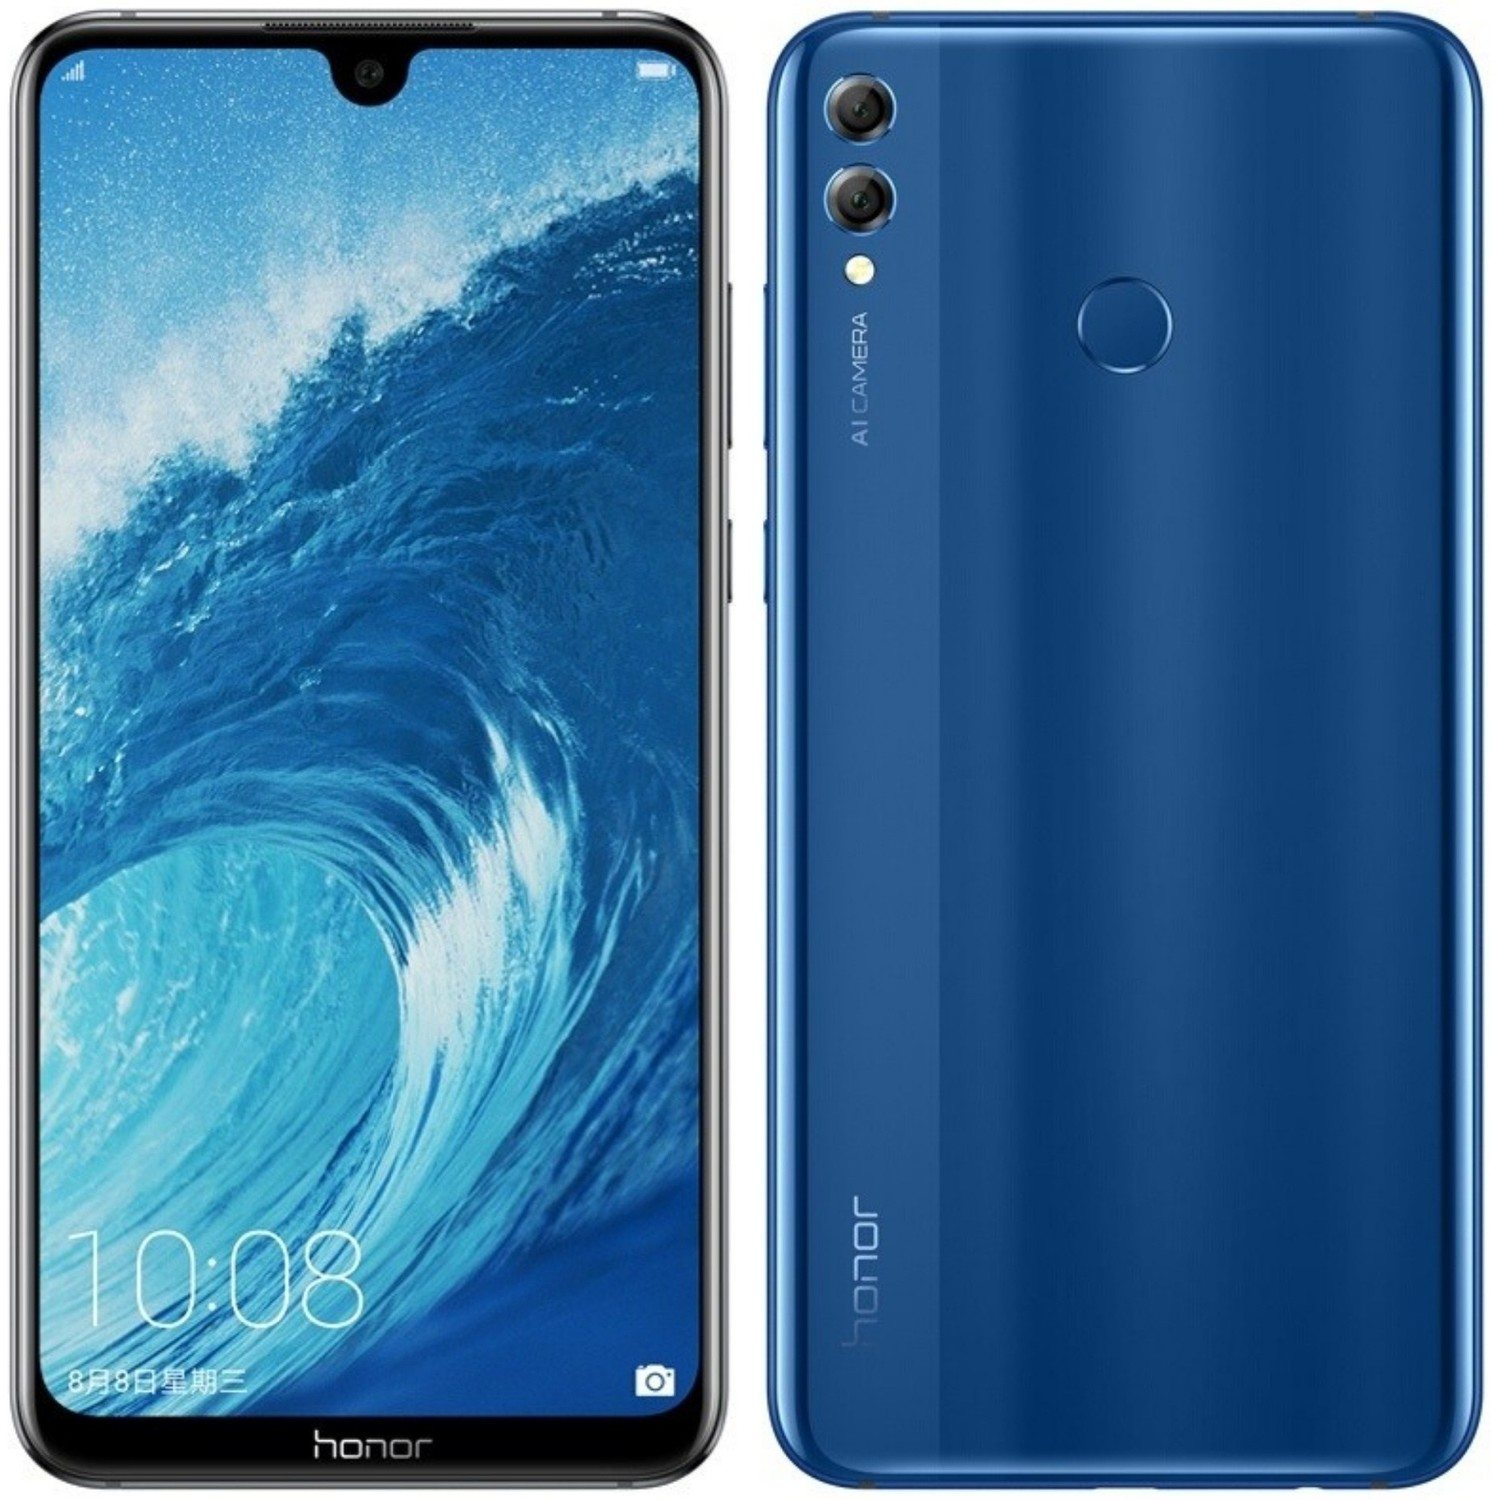 Image result for honor 8X Max images